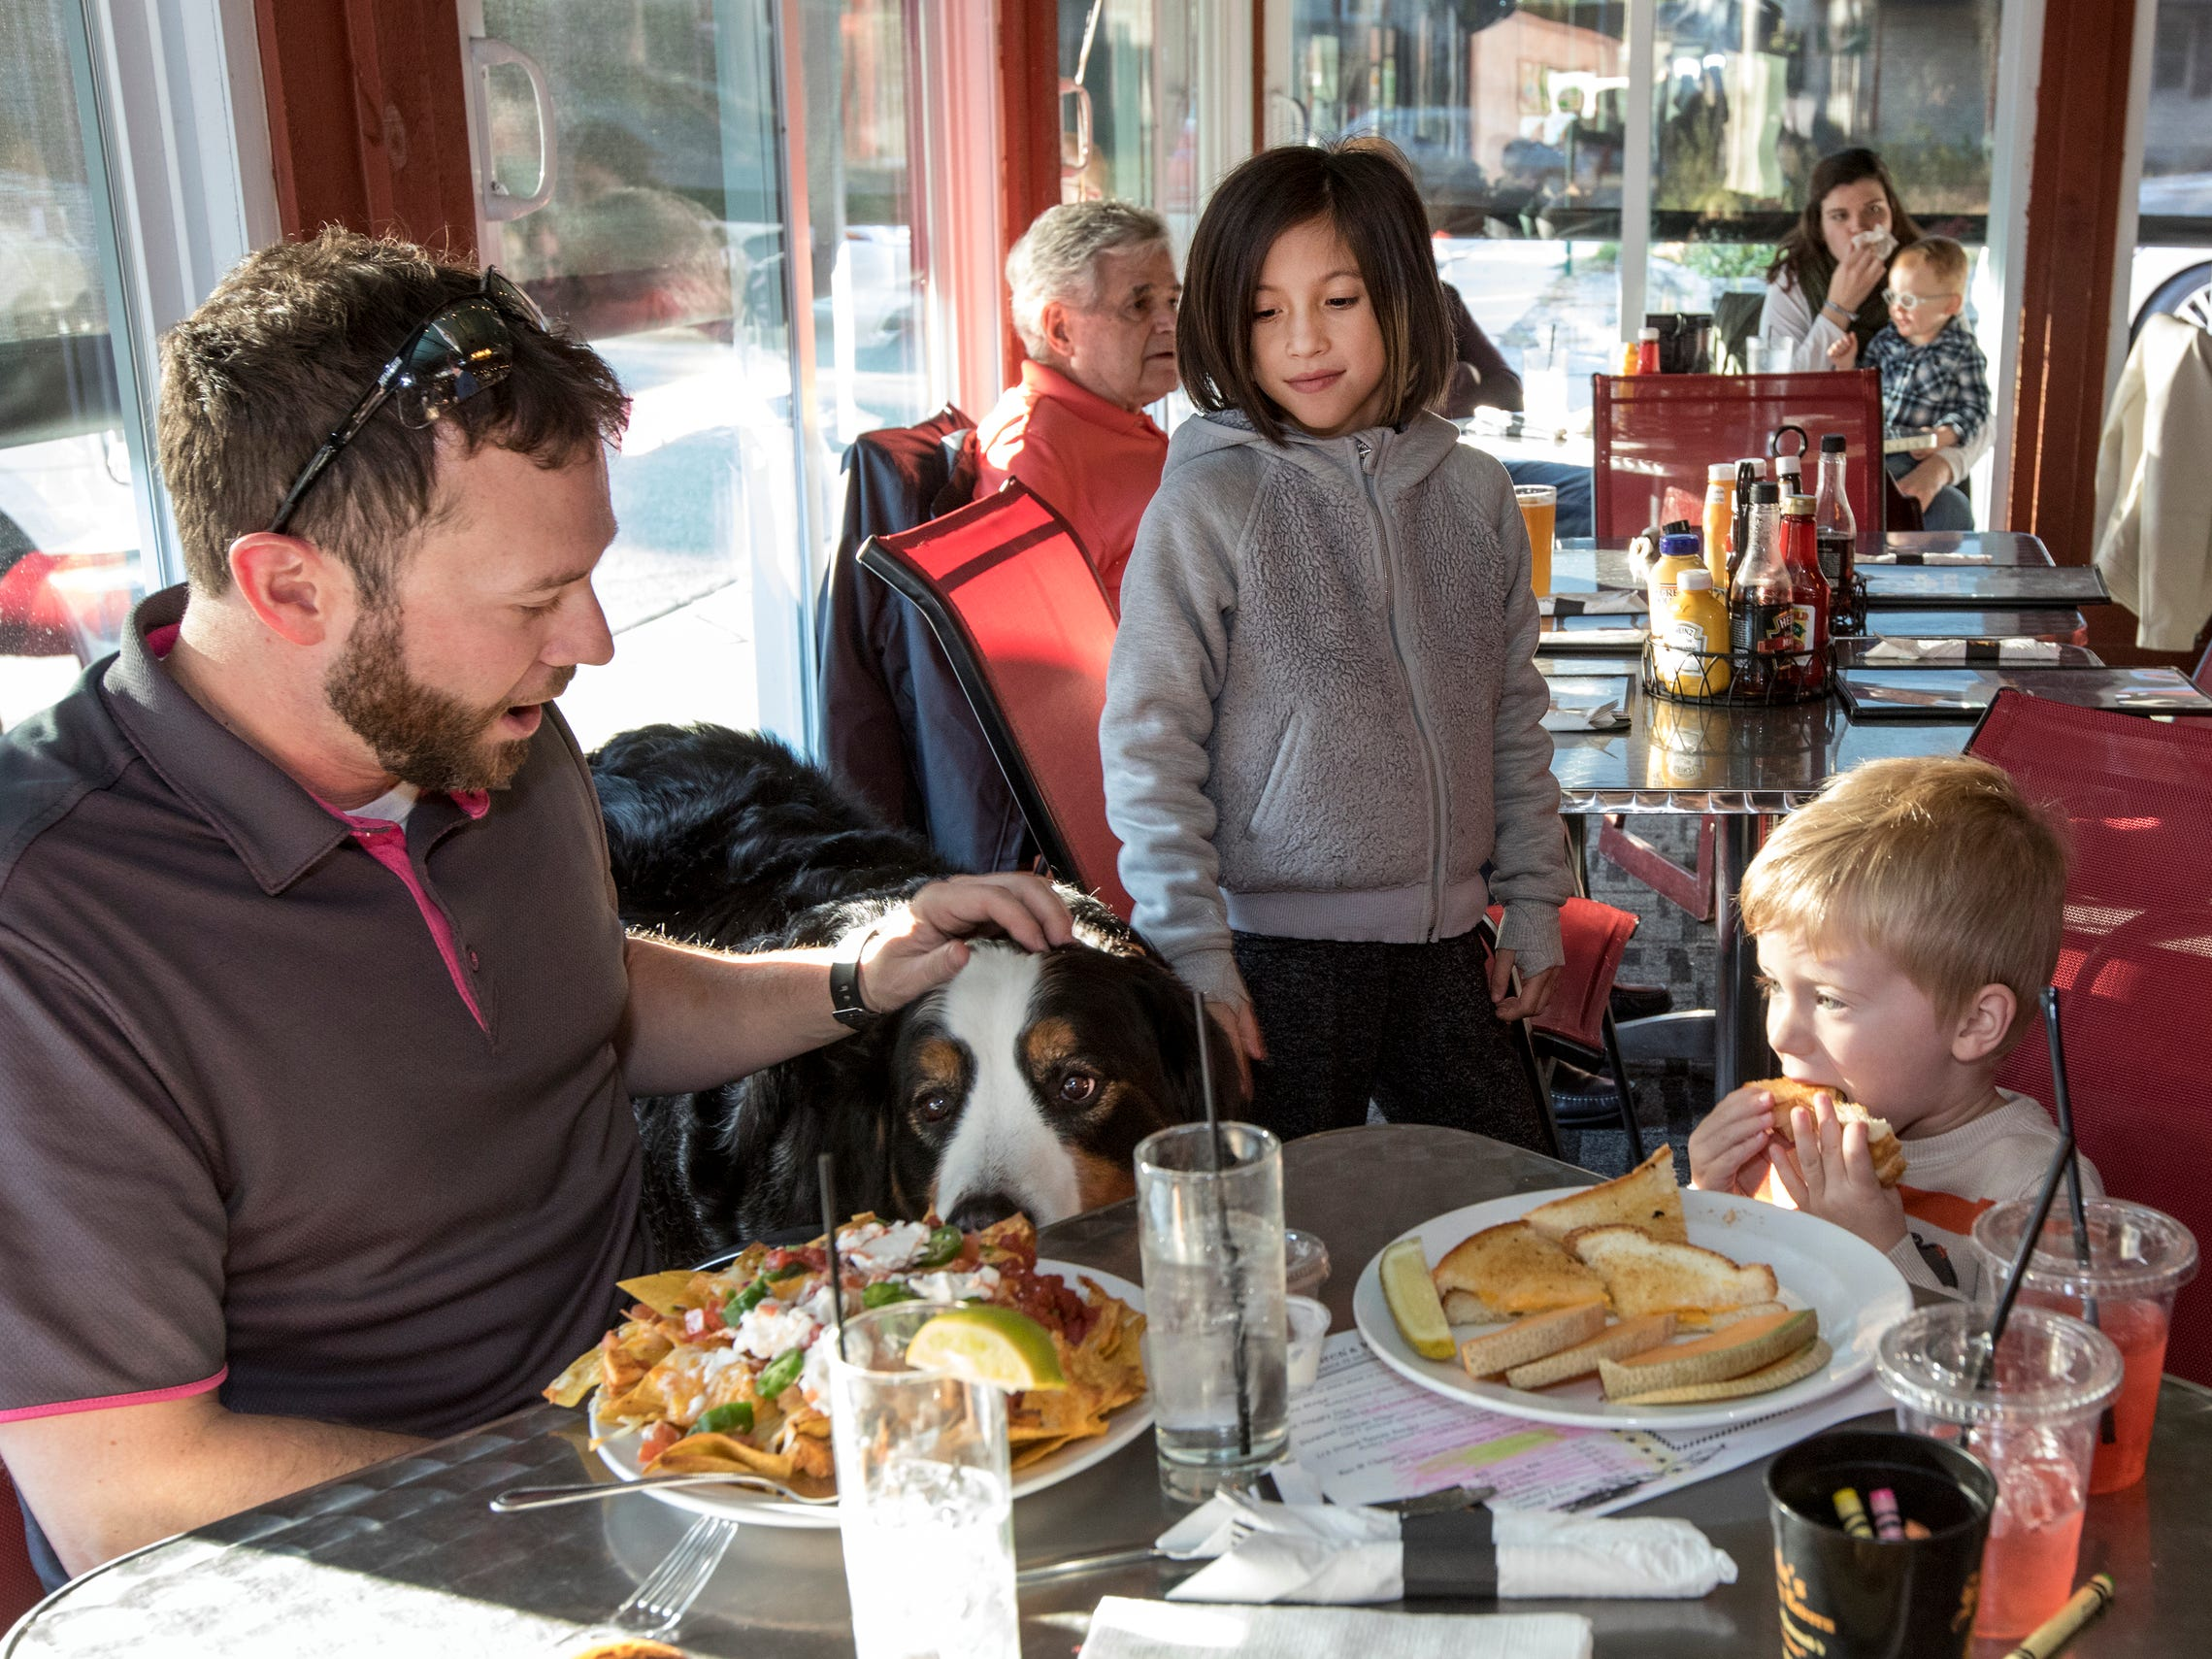 From left, Plymouth City Commissioner Marques Thomey, Leila Gatmaitan, 8 and Dean Thomey, 3, all of Plymouth, receive a visit from Stella at their table during her 8th birthday celebration at Stella's Black Dog Tavern in Plymouth on Monday, Oct. 22, 2018.